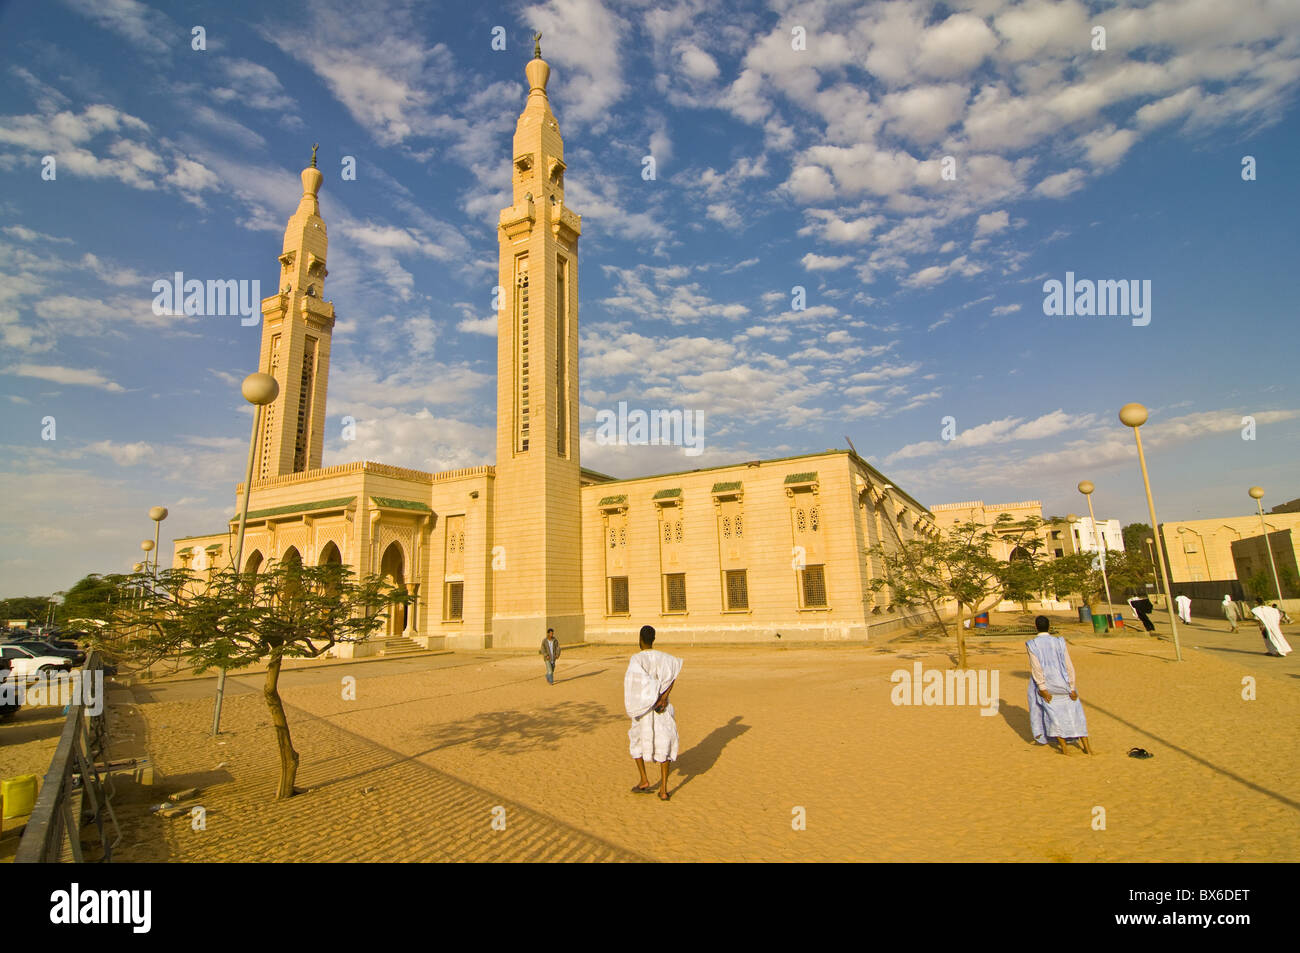 Central mosque in Nouakchott, Mauritania, Africa - Stock Image